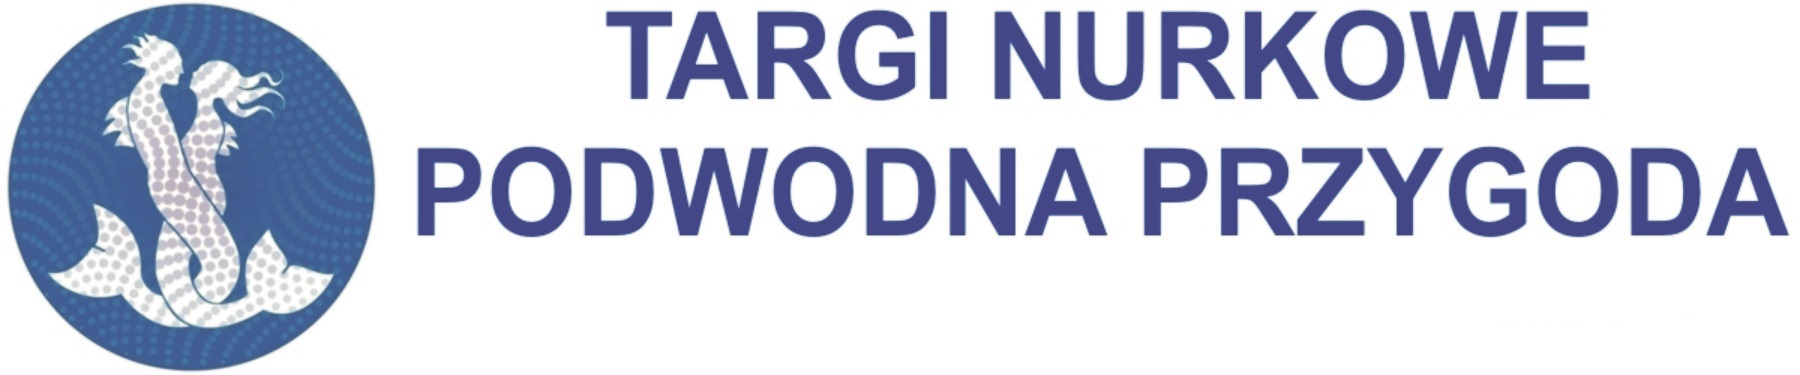 BANER-nowy20161